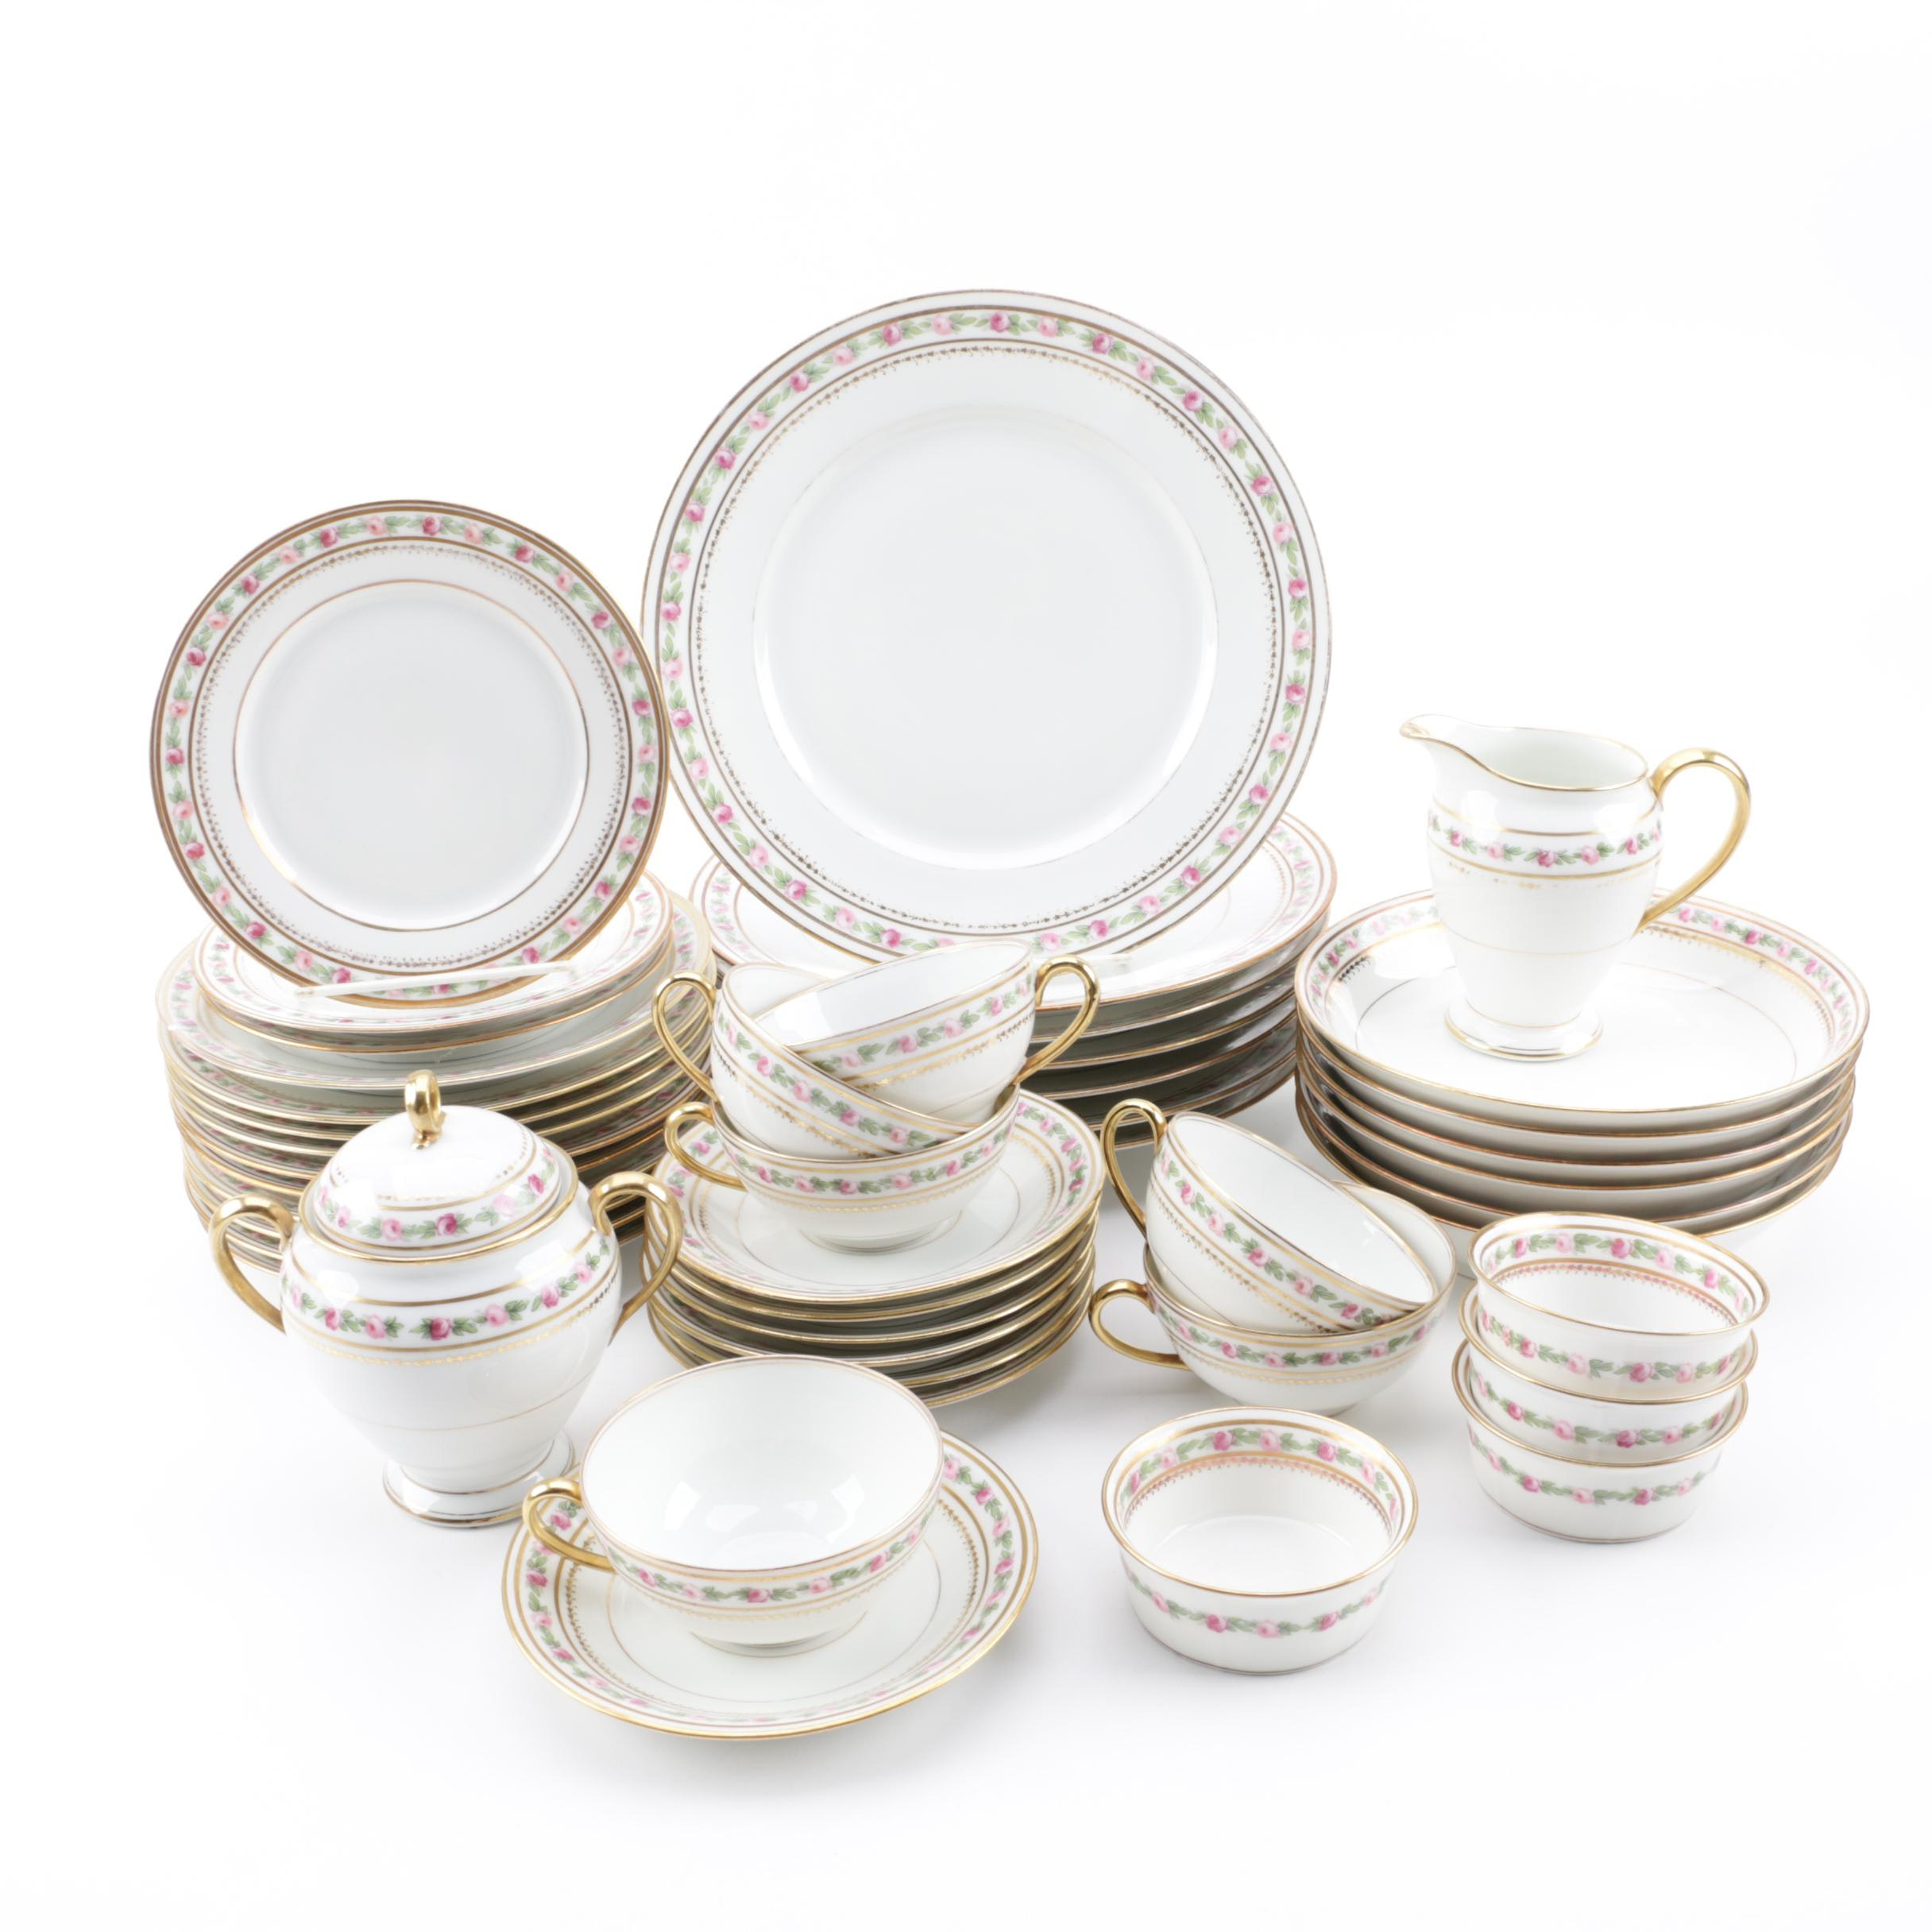 Early 20th Century Bawo & Dotter Elite Works Limoges Porcelain Dinnerware